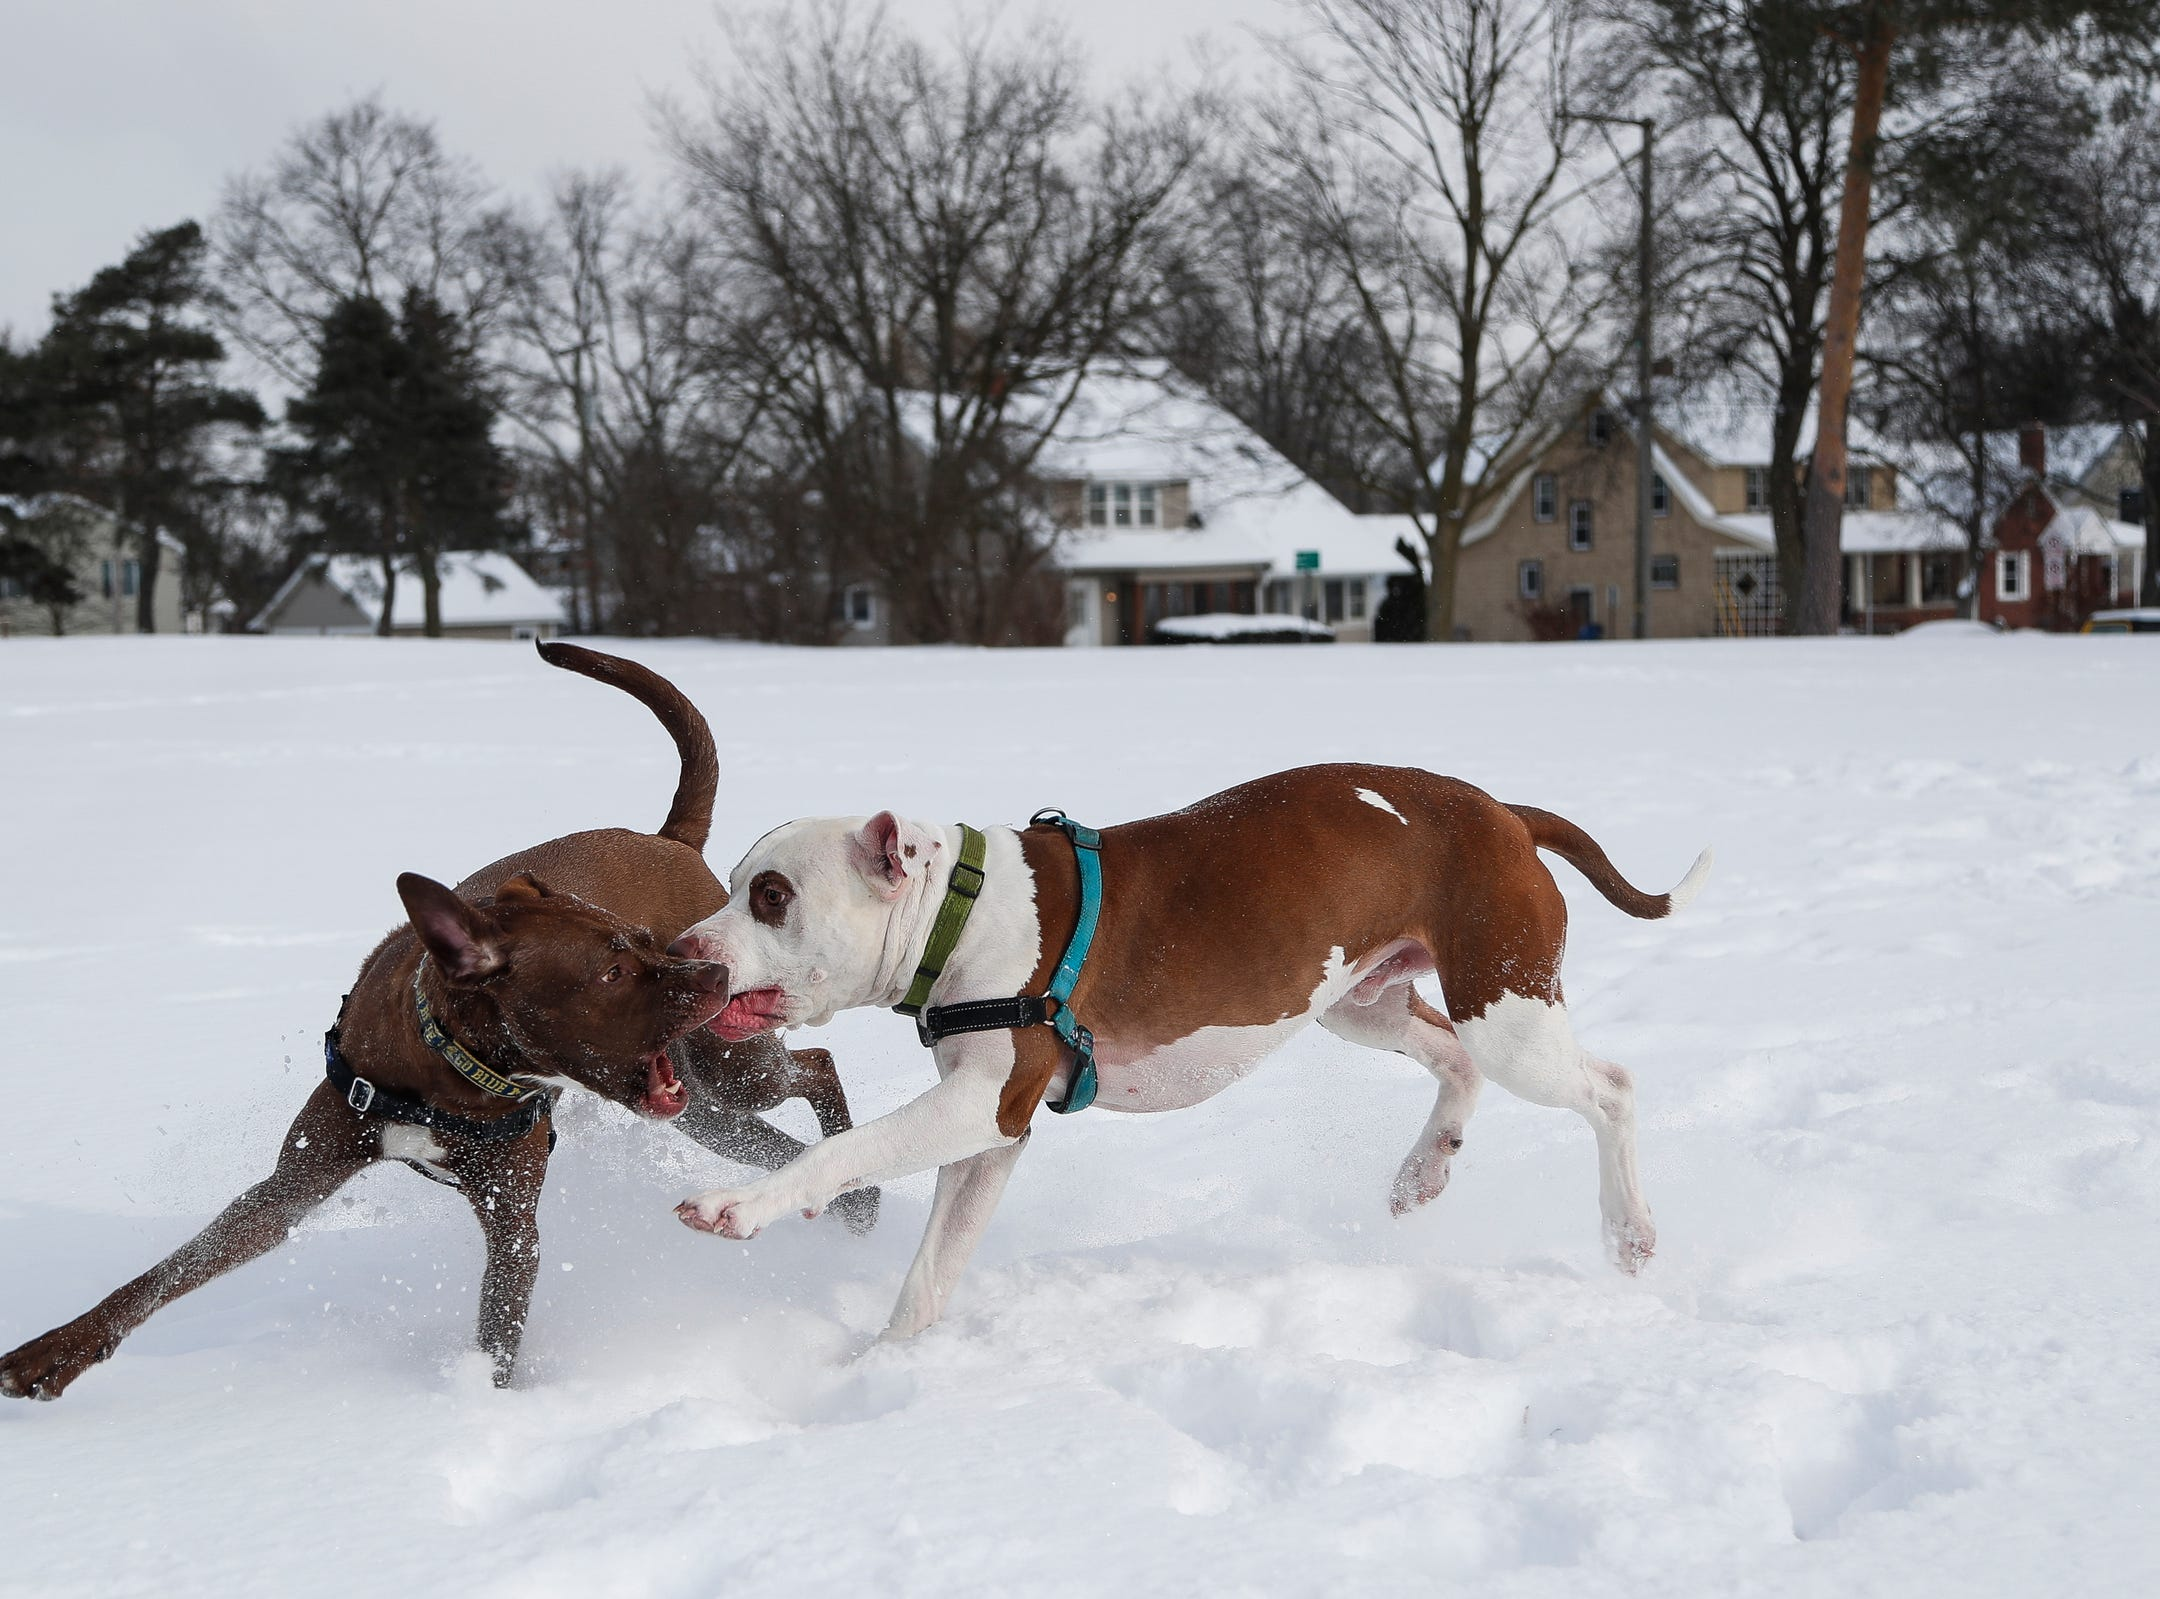 Woodson, belongs to Elsha Chapman, left, and Tucker, who belongs to Sarah Bartlett play at the Allmendinger Park in Ann Arbor, Tuesday, Jan. 29, 2019.